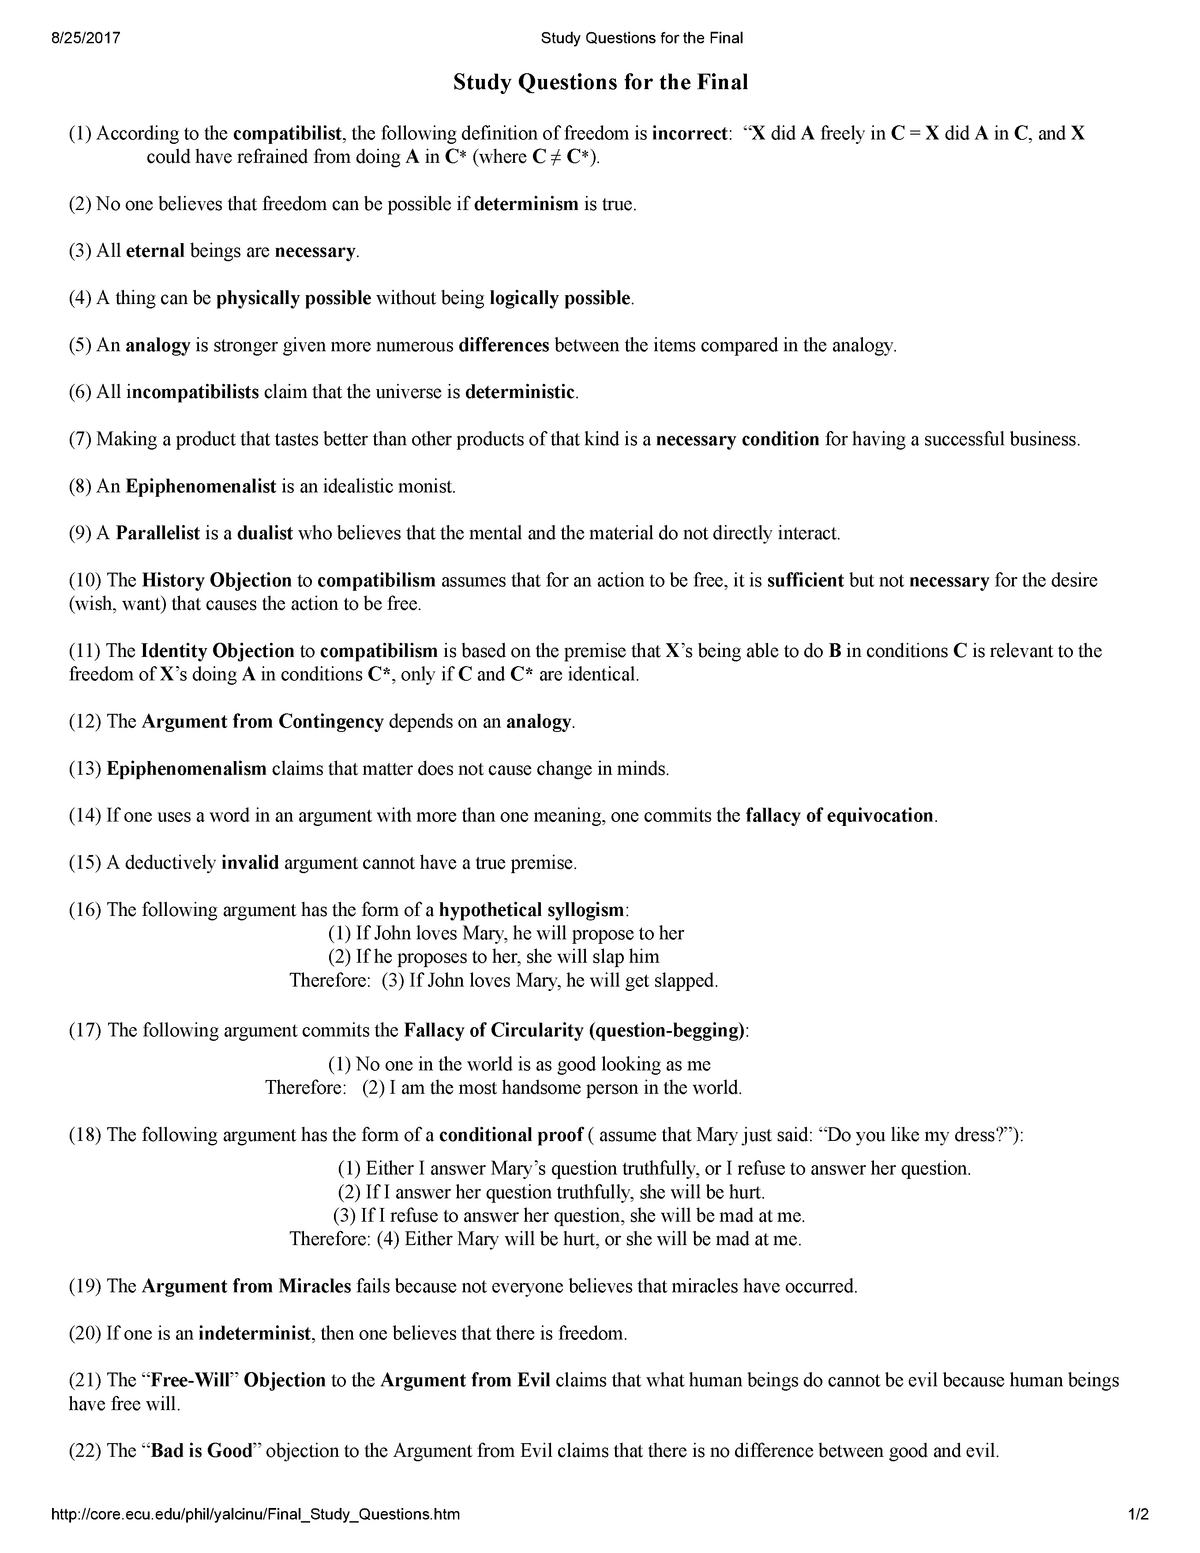 Study Questions for the Final - PHIL 1110: Introduction To